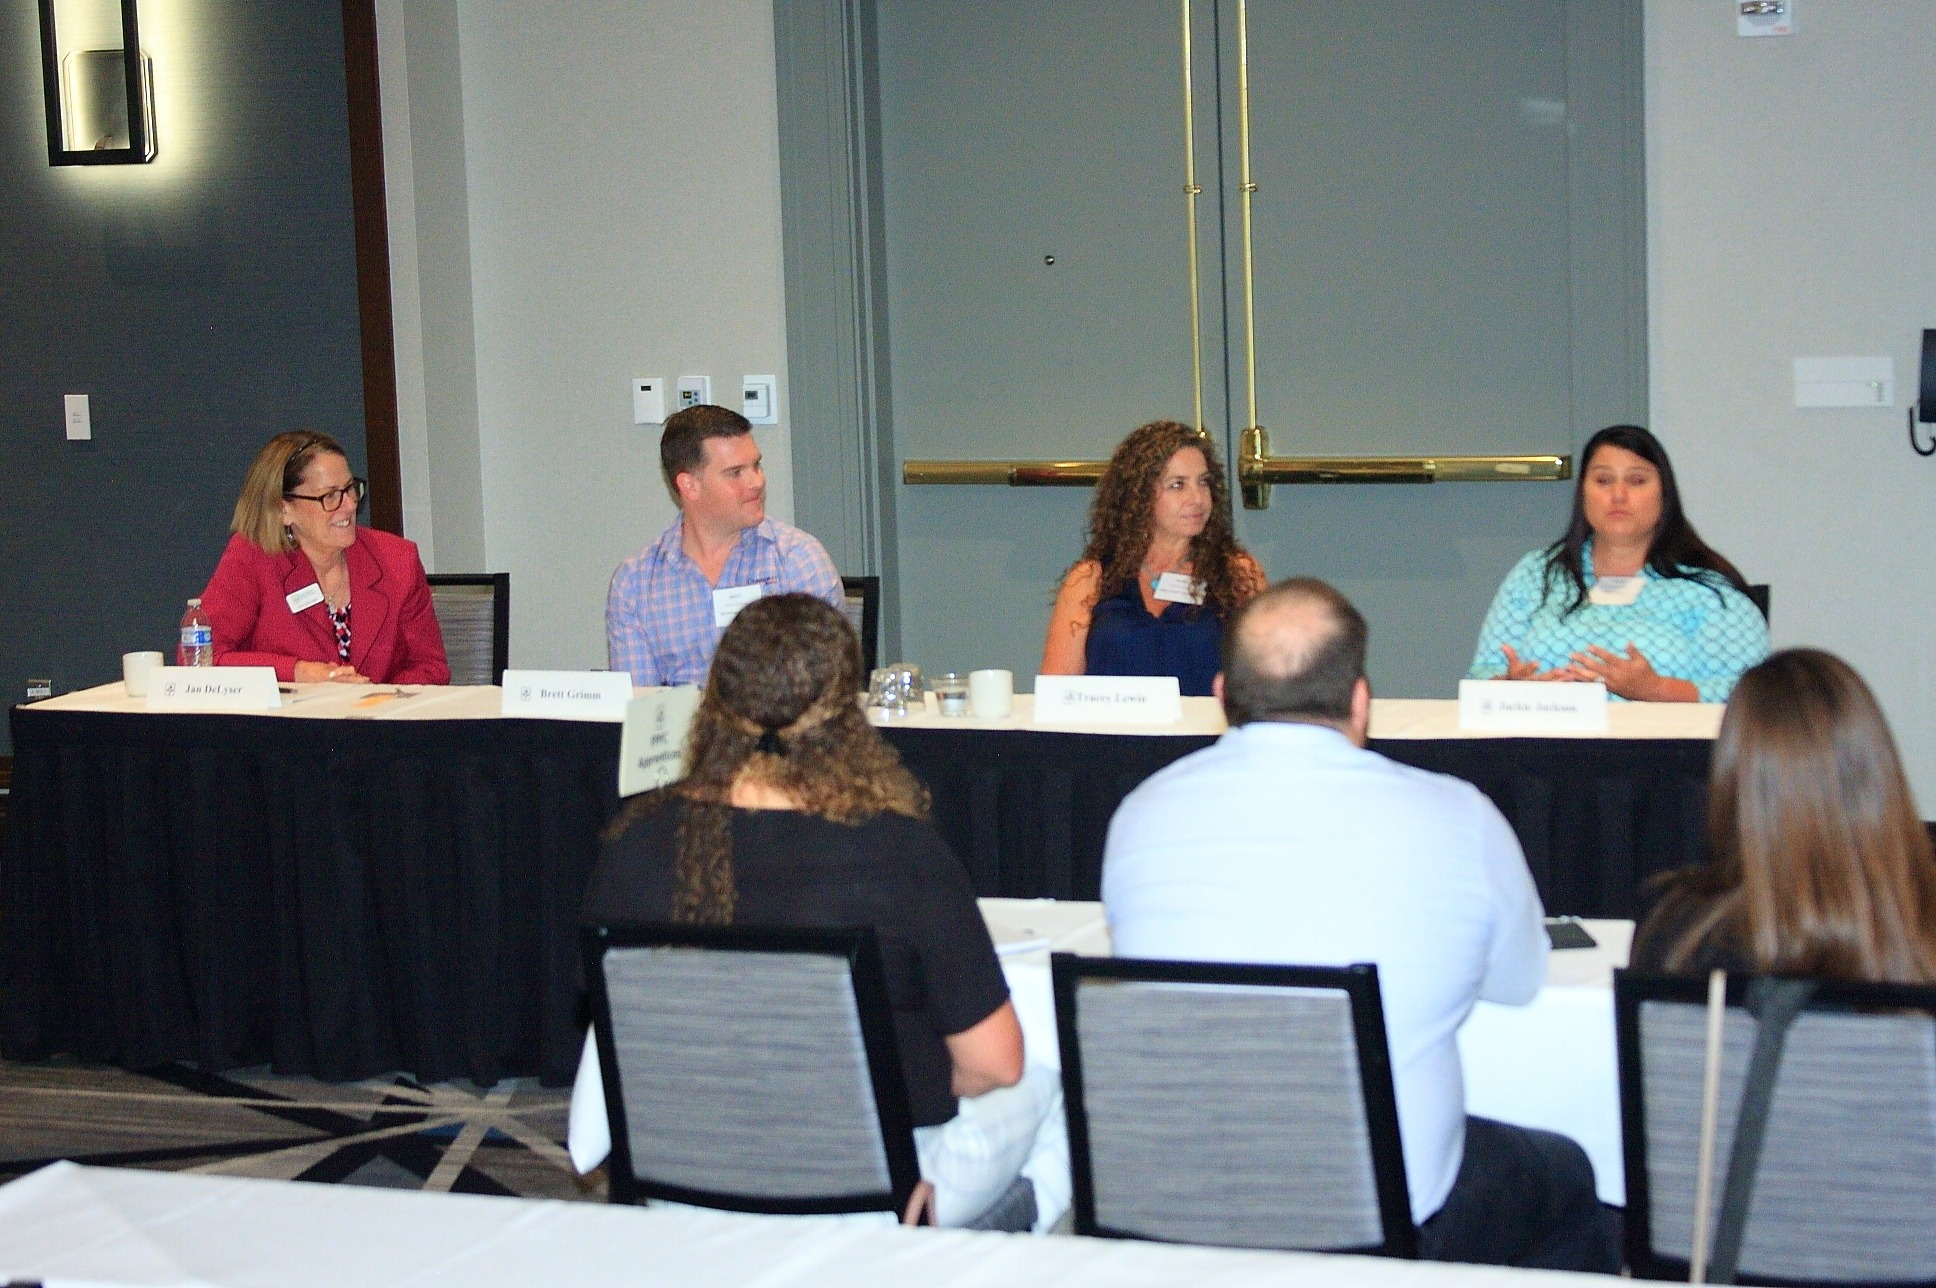 Jan DeLyser of California Avocado Commission moderated a panel about industry trends with panelists Brett Grimm of Grimmway Farms, Tracey Lewin of the Allen Lund Company, and Jackie Jackson of Albertsons Companies.